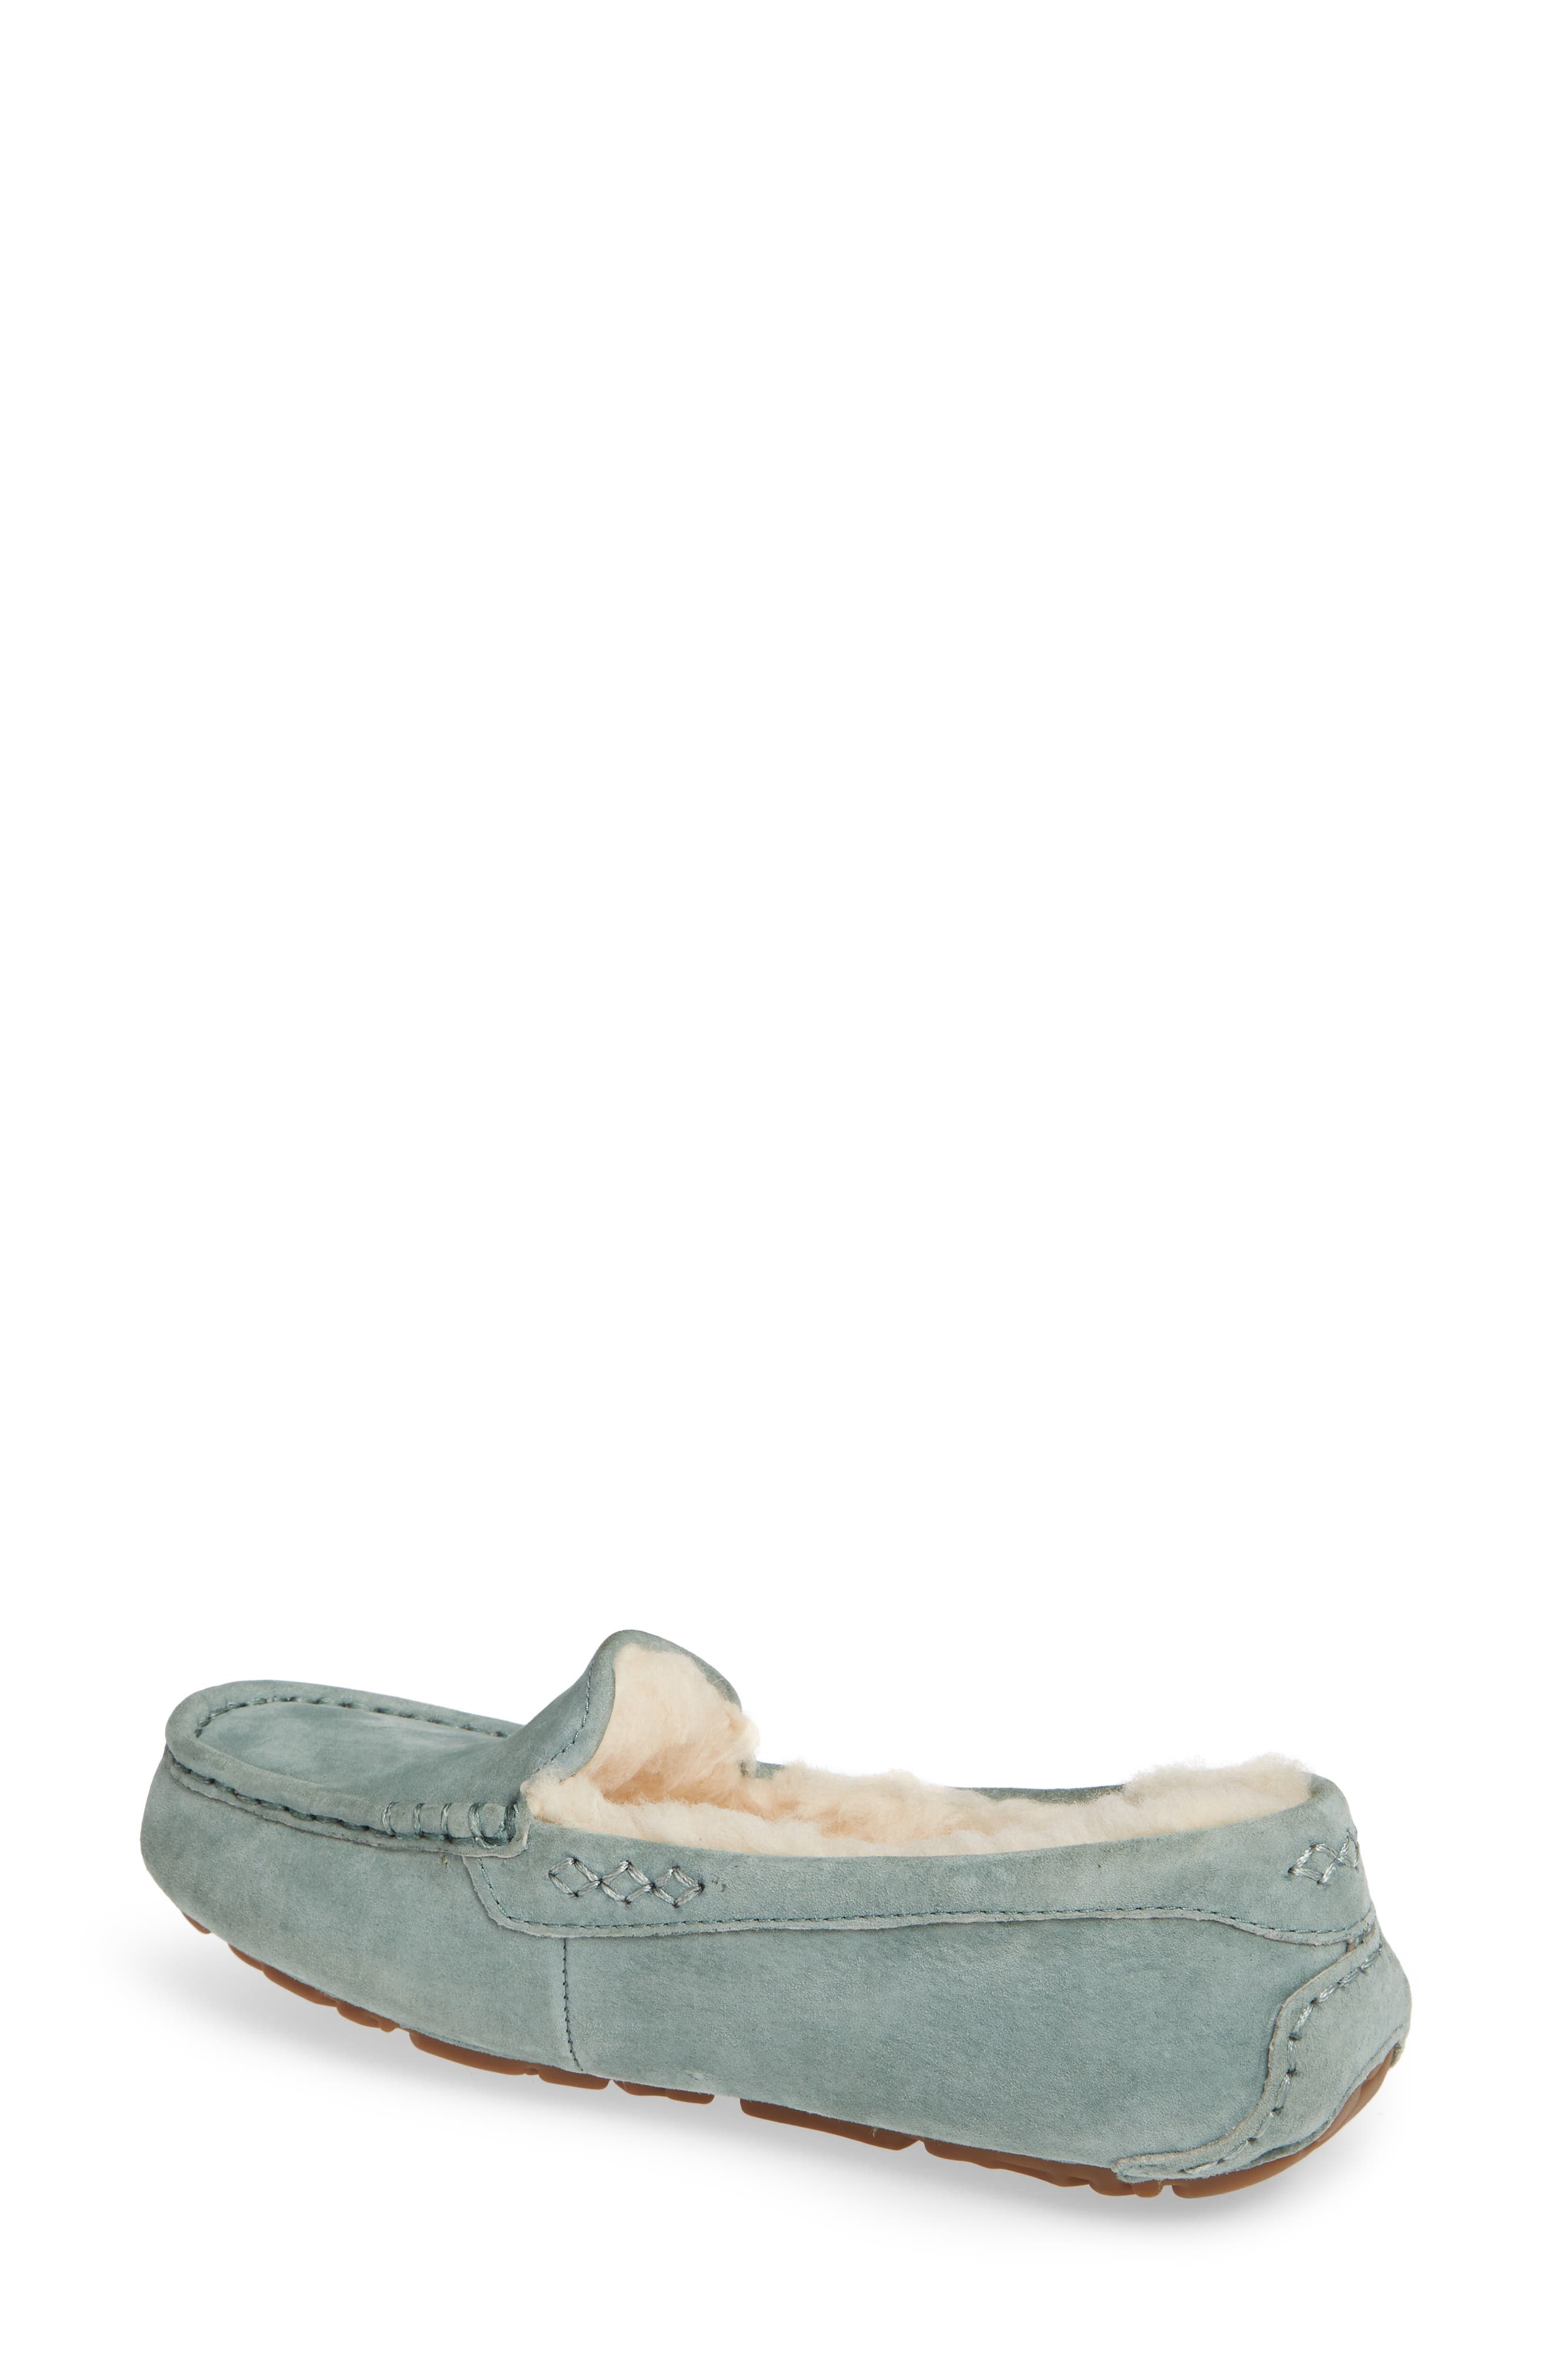 Ansley Water Resistant Slipper,                             Alternate thumbnail 2, color,                             Sea Green